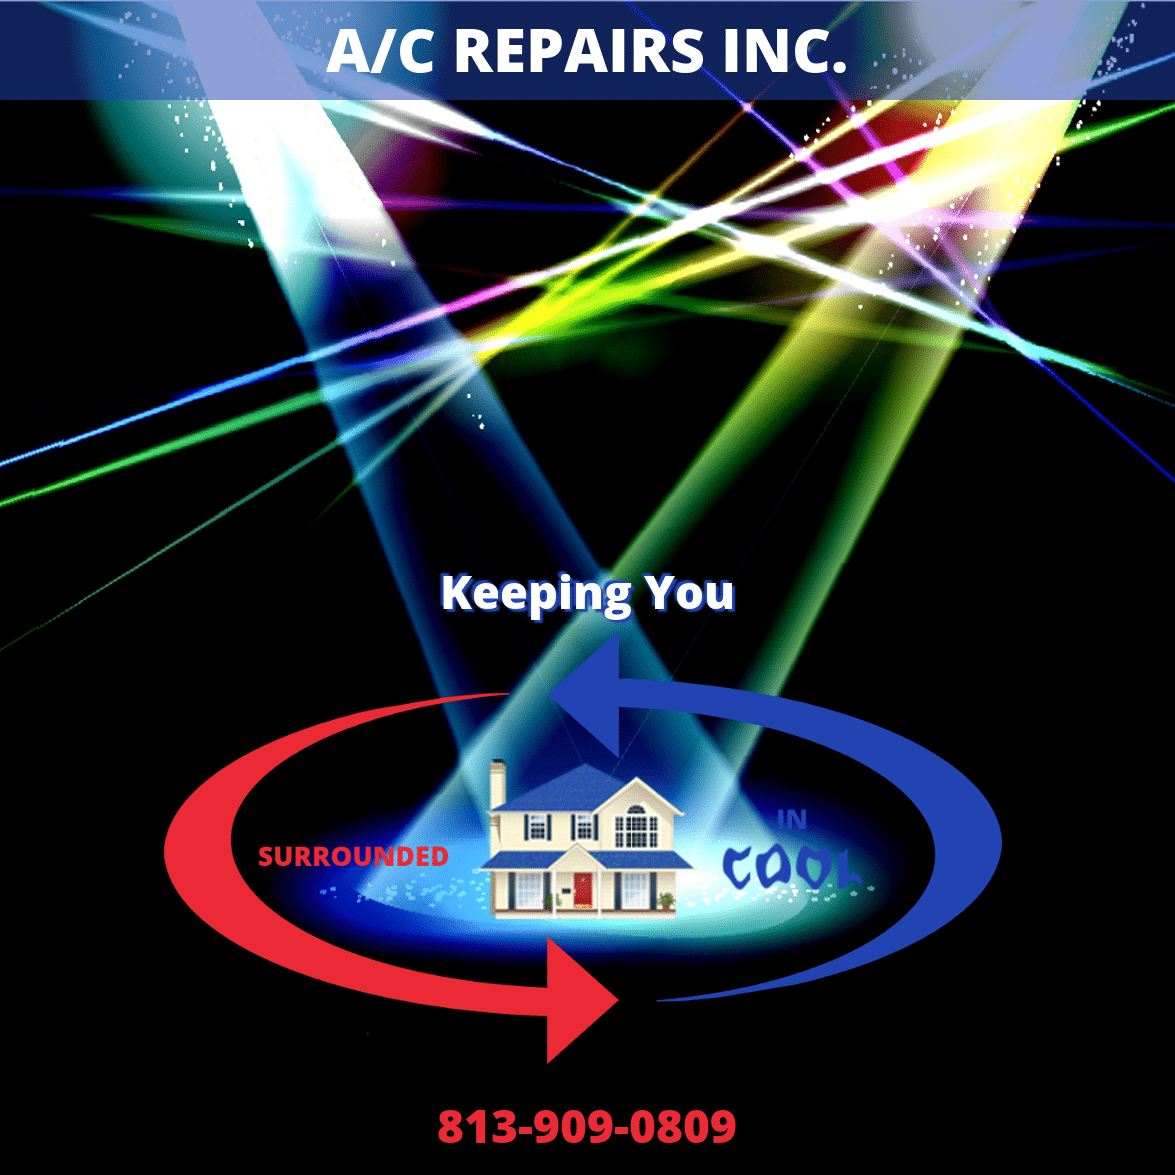 A/C Repairs Inc. for Tampa on Instagram